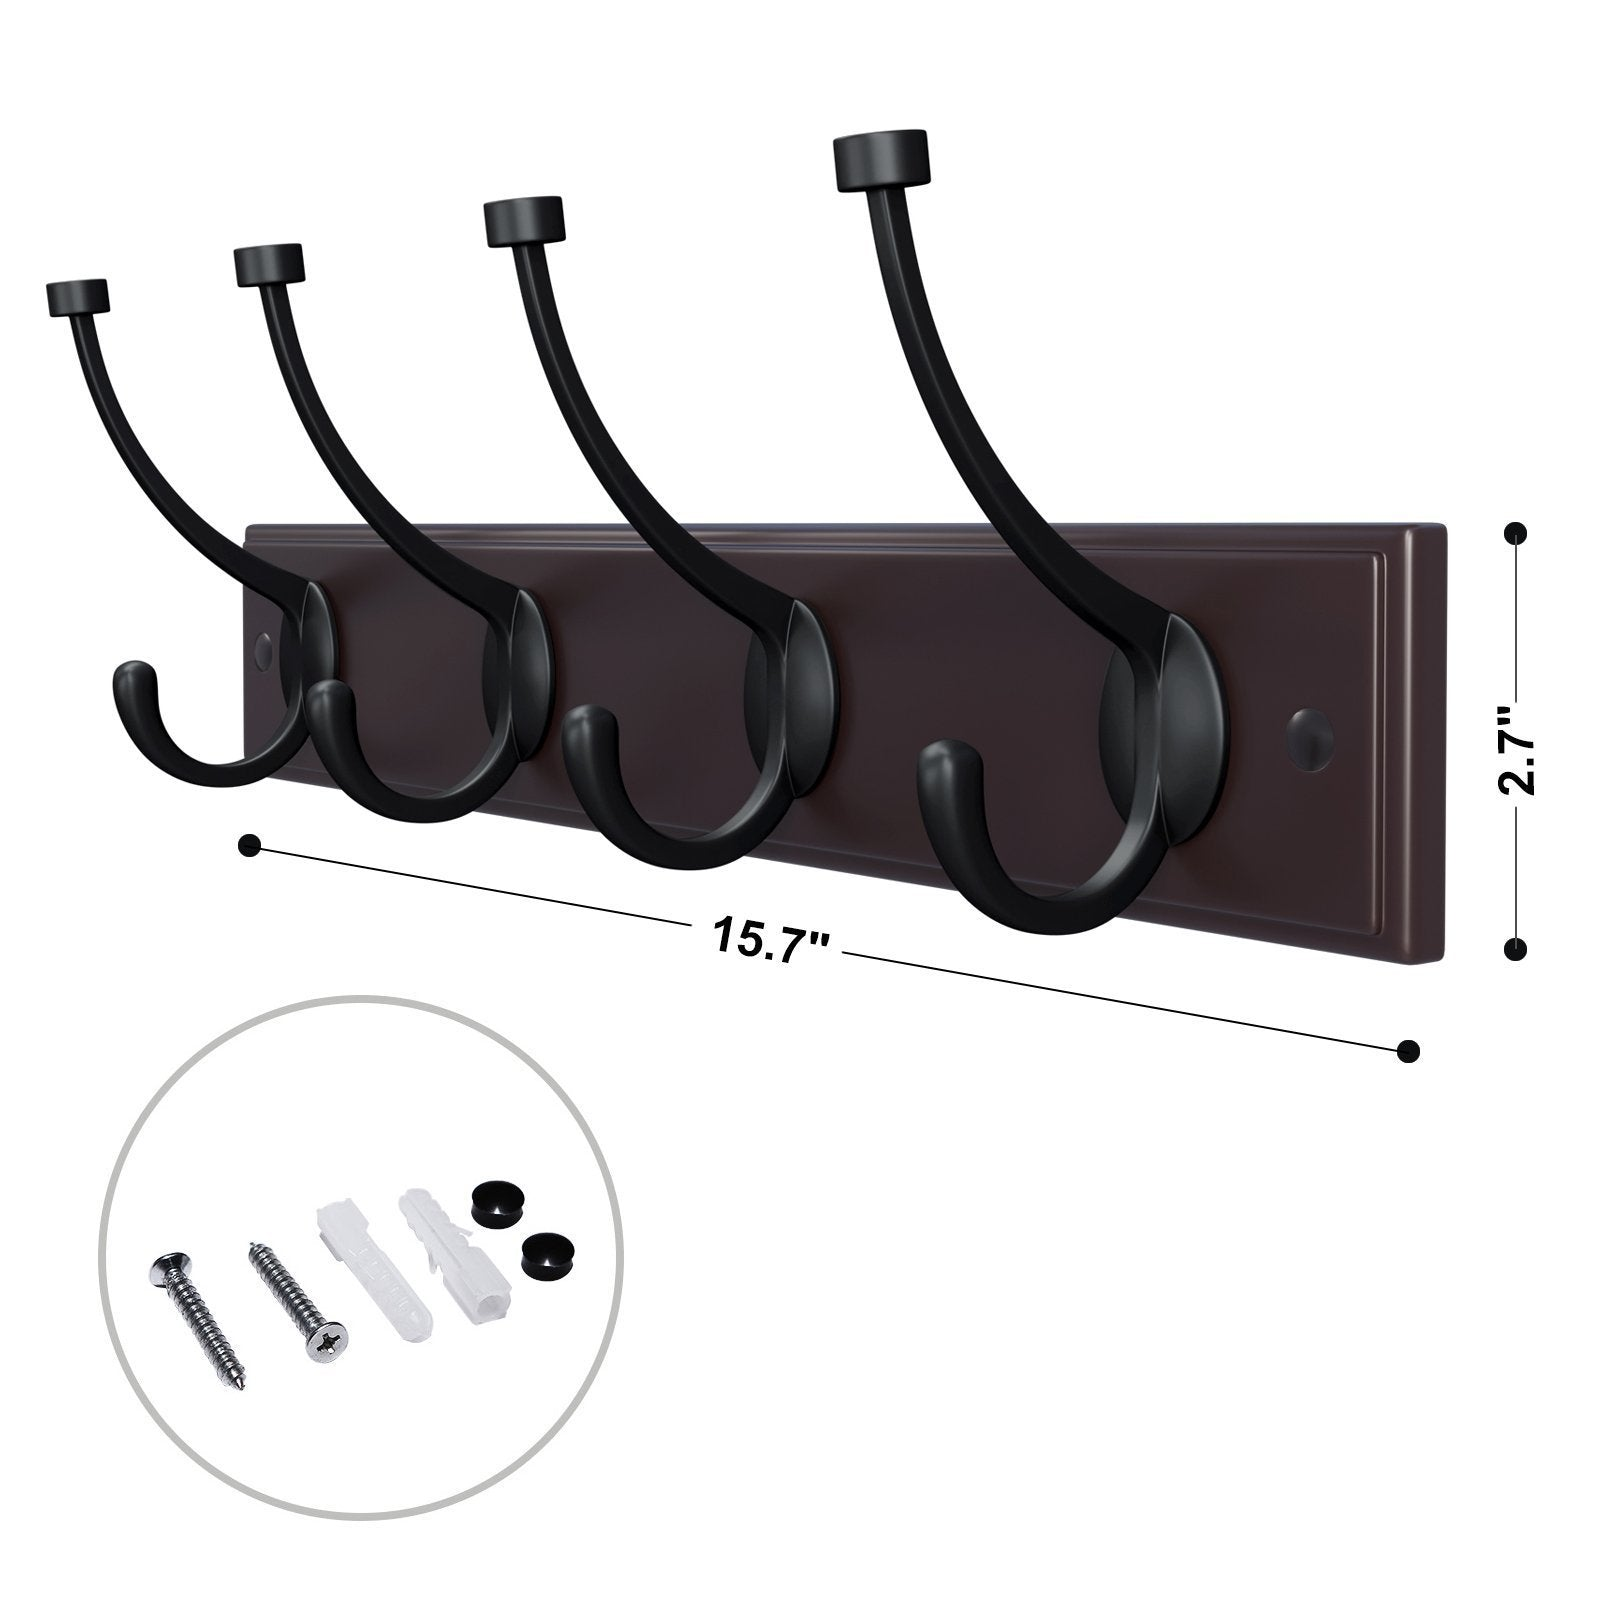 Selection songmics wooden wall mounted coat rack 16 inch rail with 4 metal hooks for entryway bathroom closet room dark brown ulhr20z